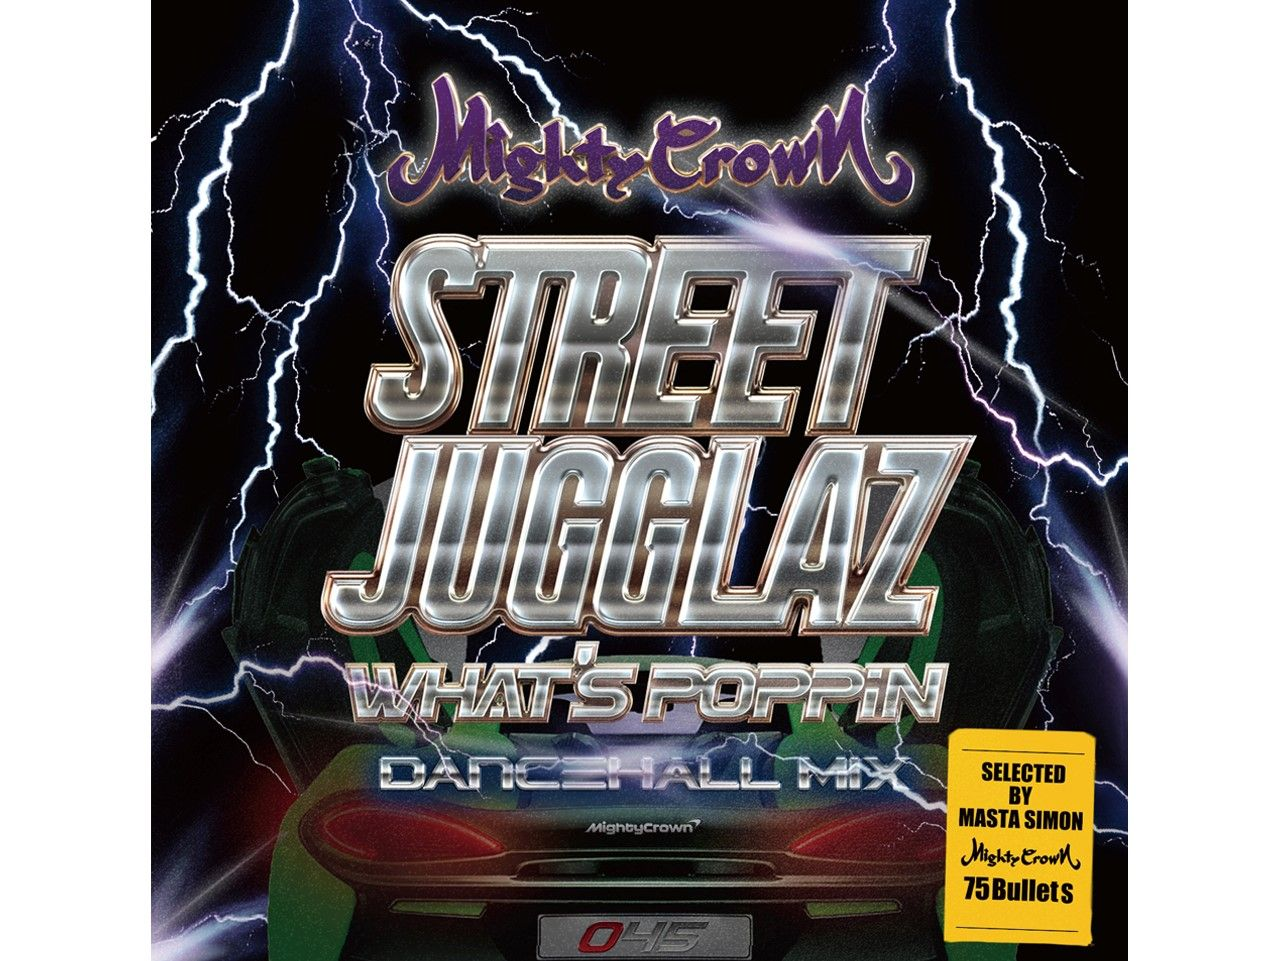 STREET JUGGLAZ WHAT'S POPPIN DANCEHALL MIX -  MIGHTY CROWN